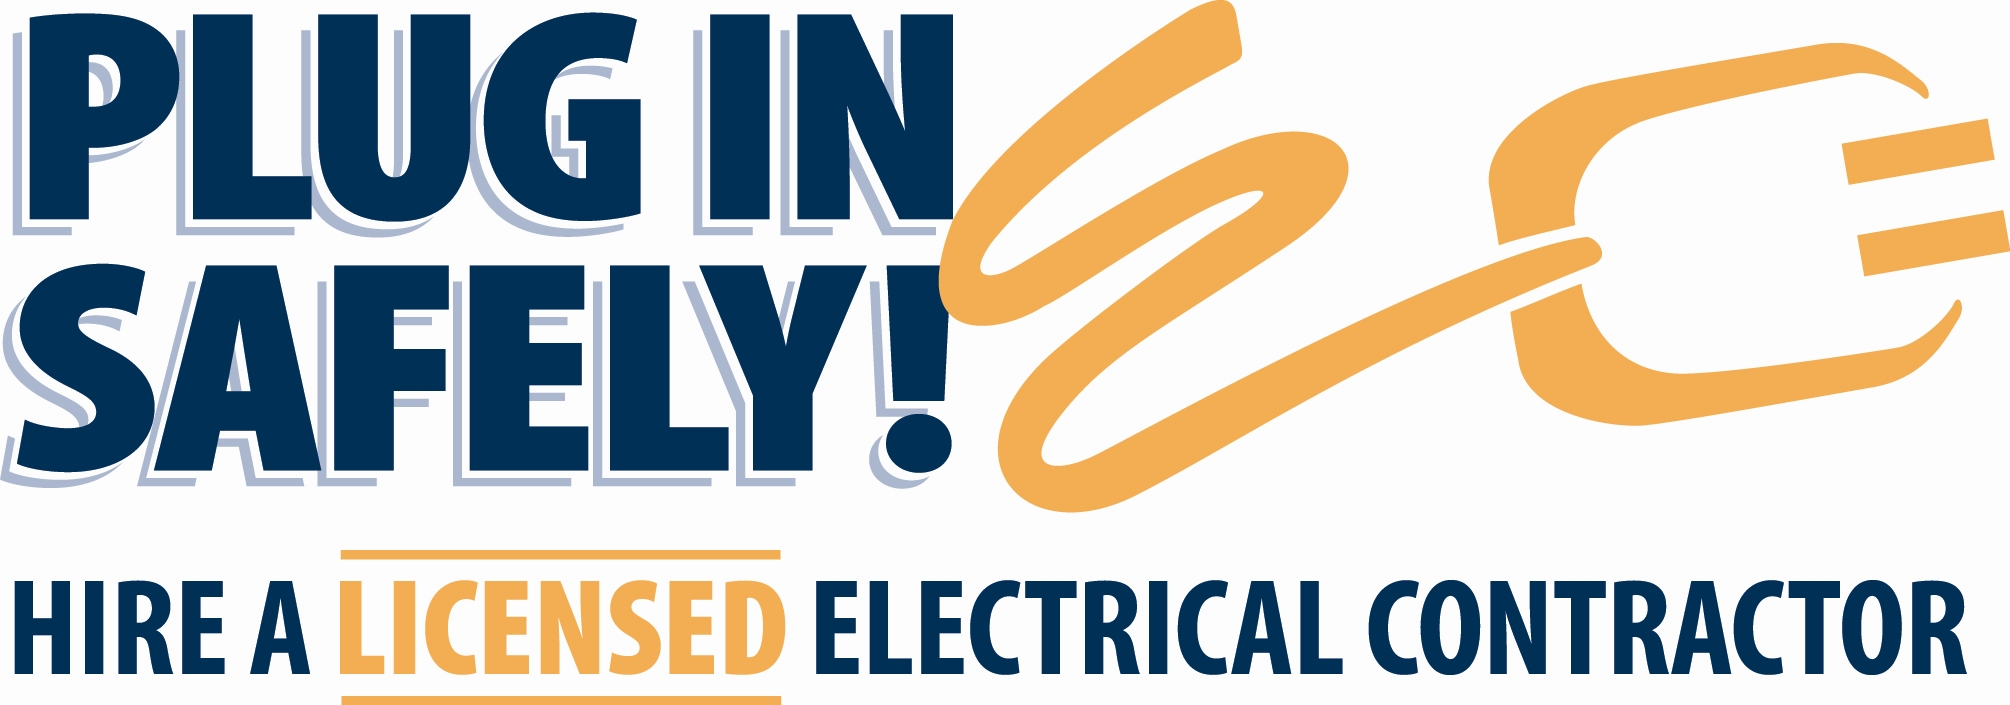 Plug in Safely - Hire a Licensed Contractor Igman Electric